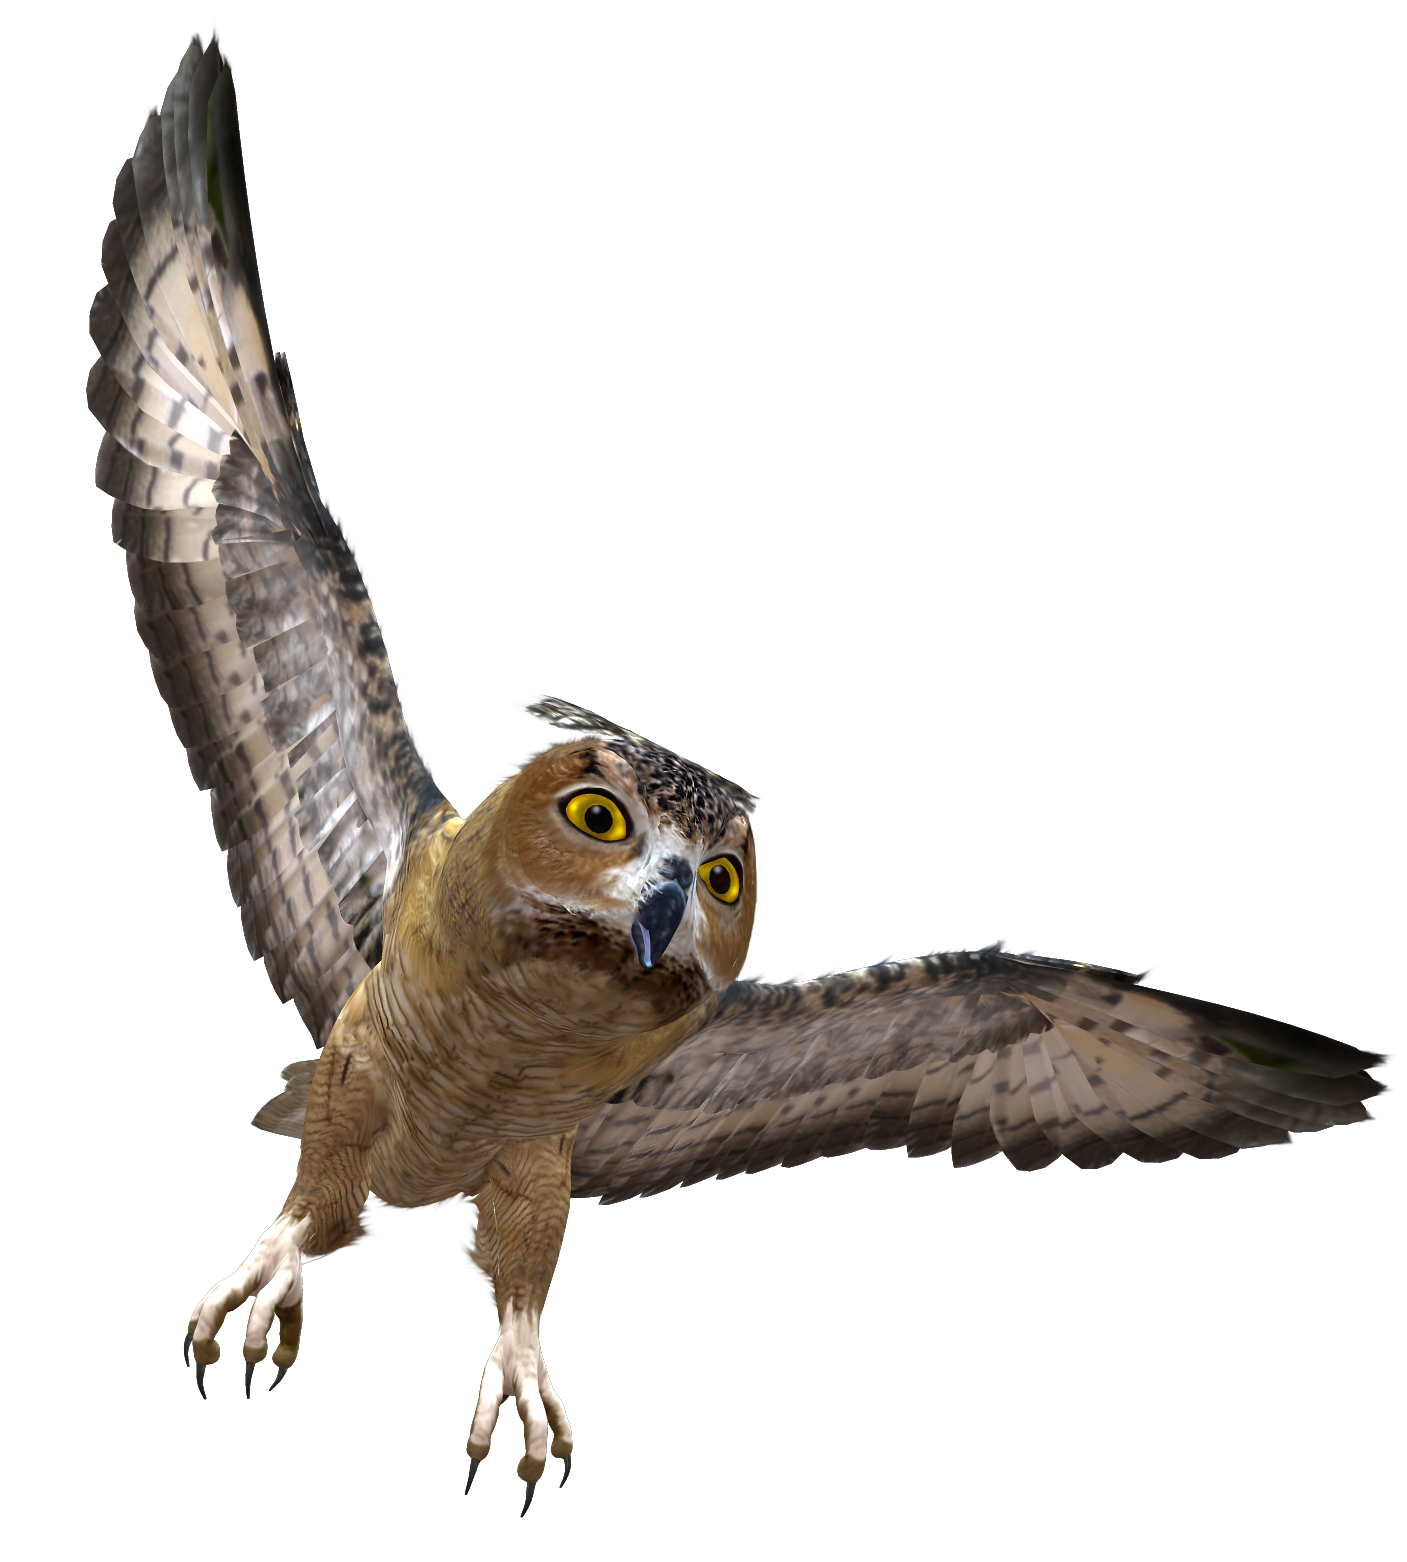 Grab and download Owls High Quality PNG